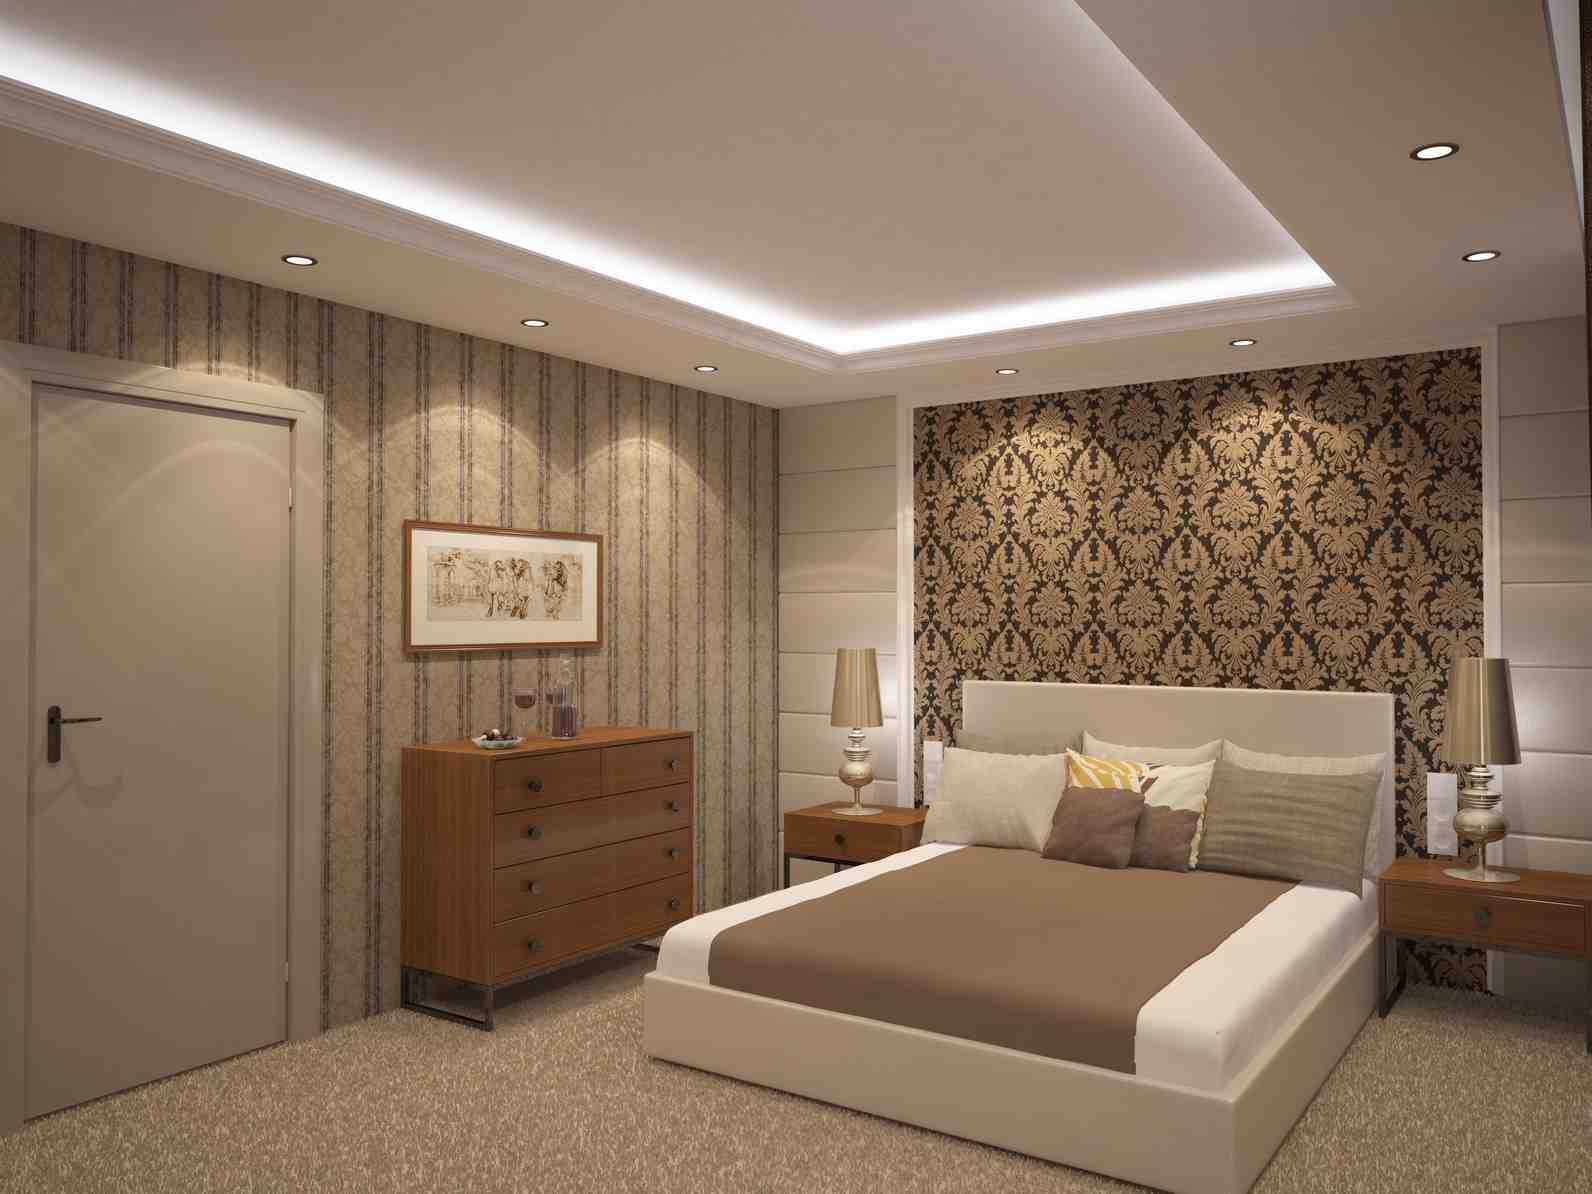 design plafond joy studio design gallery best design. Black Bedroom Furniture Sets. Home Design Ideas